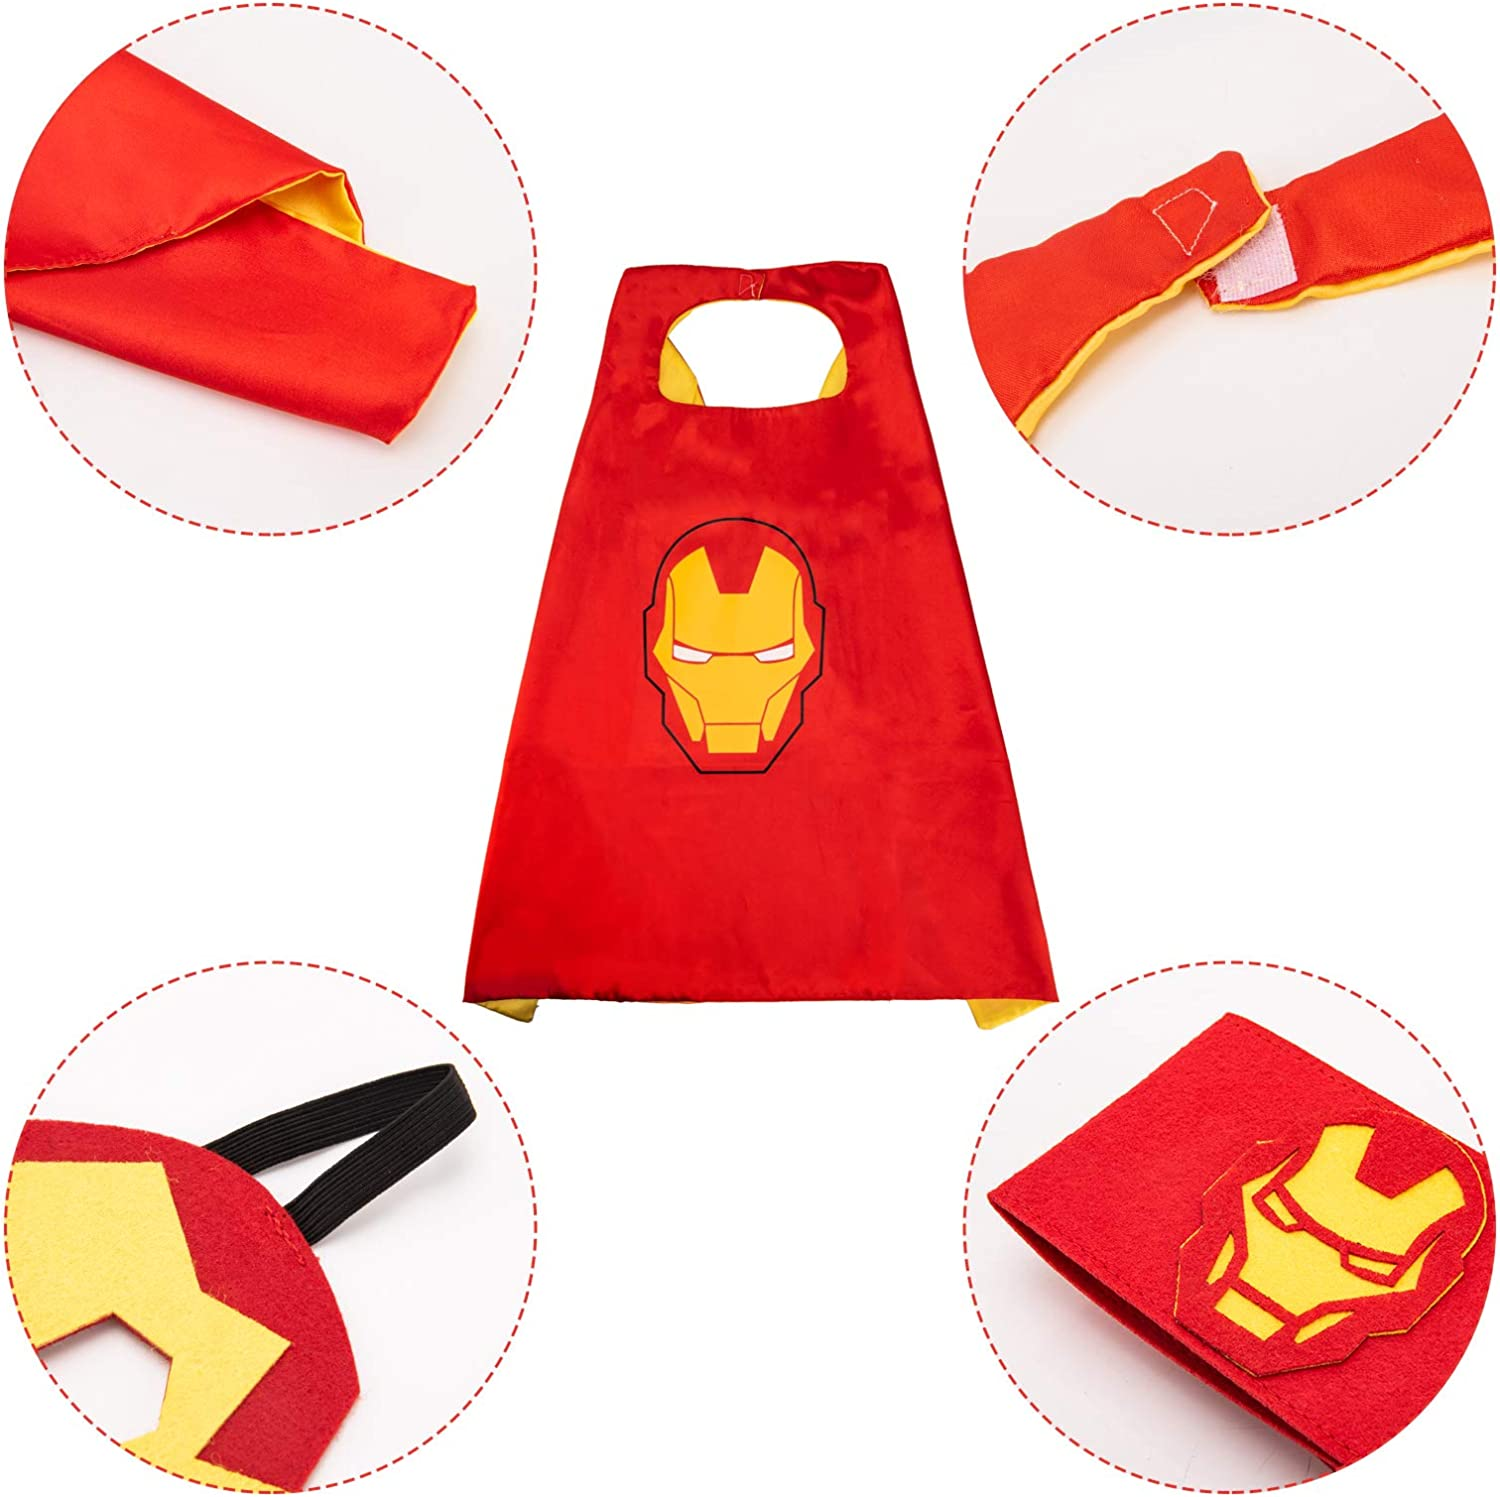 The Popular Toy Gifts for 3-12 Years Old Boys Boys Dress up Superhero Costumes for Party Kids Superhero Capes and Masks with Belt Red